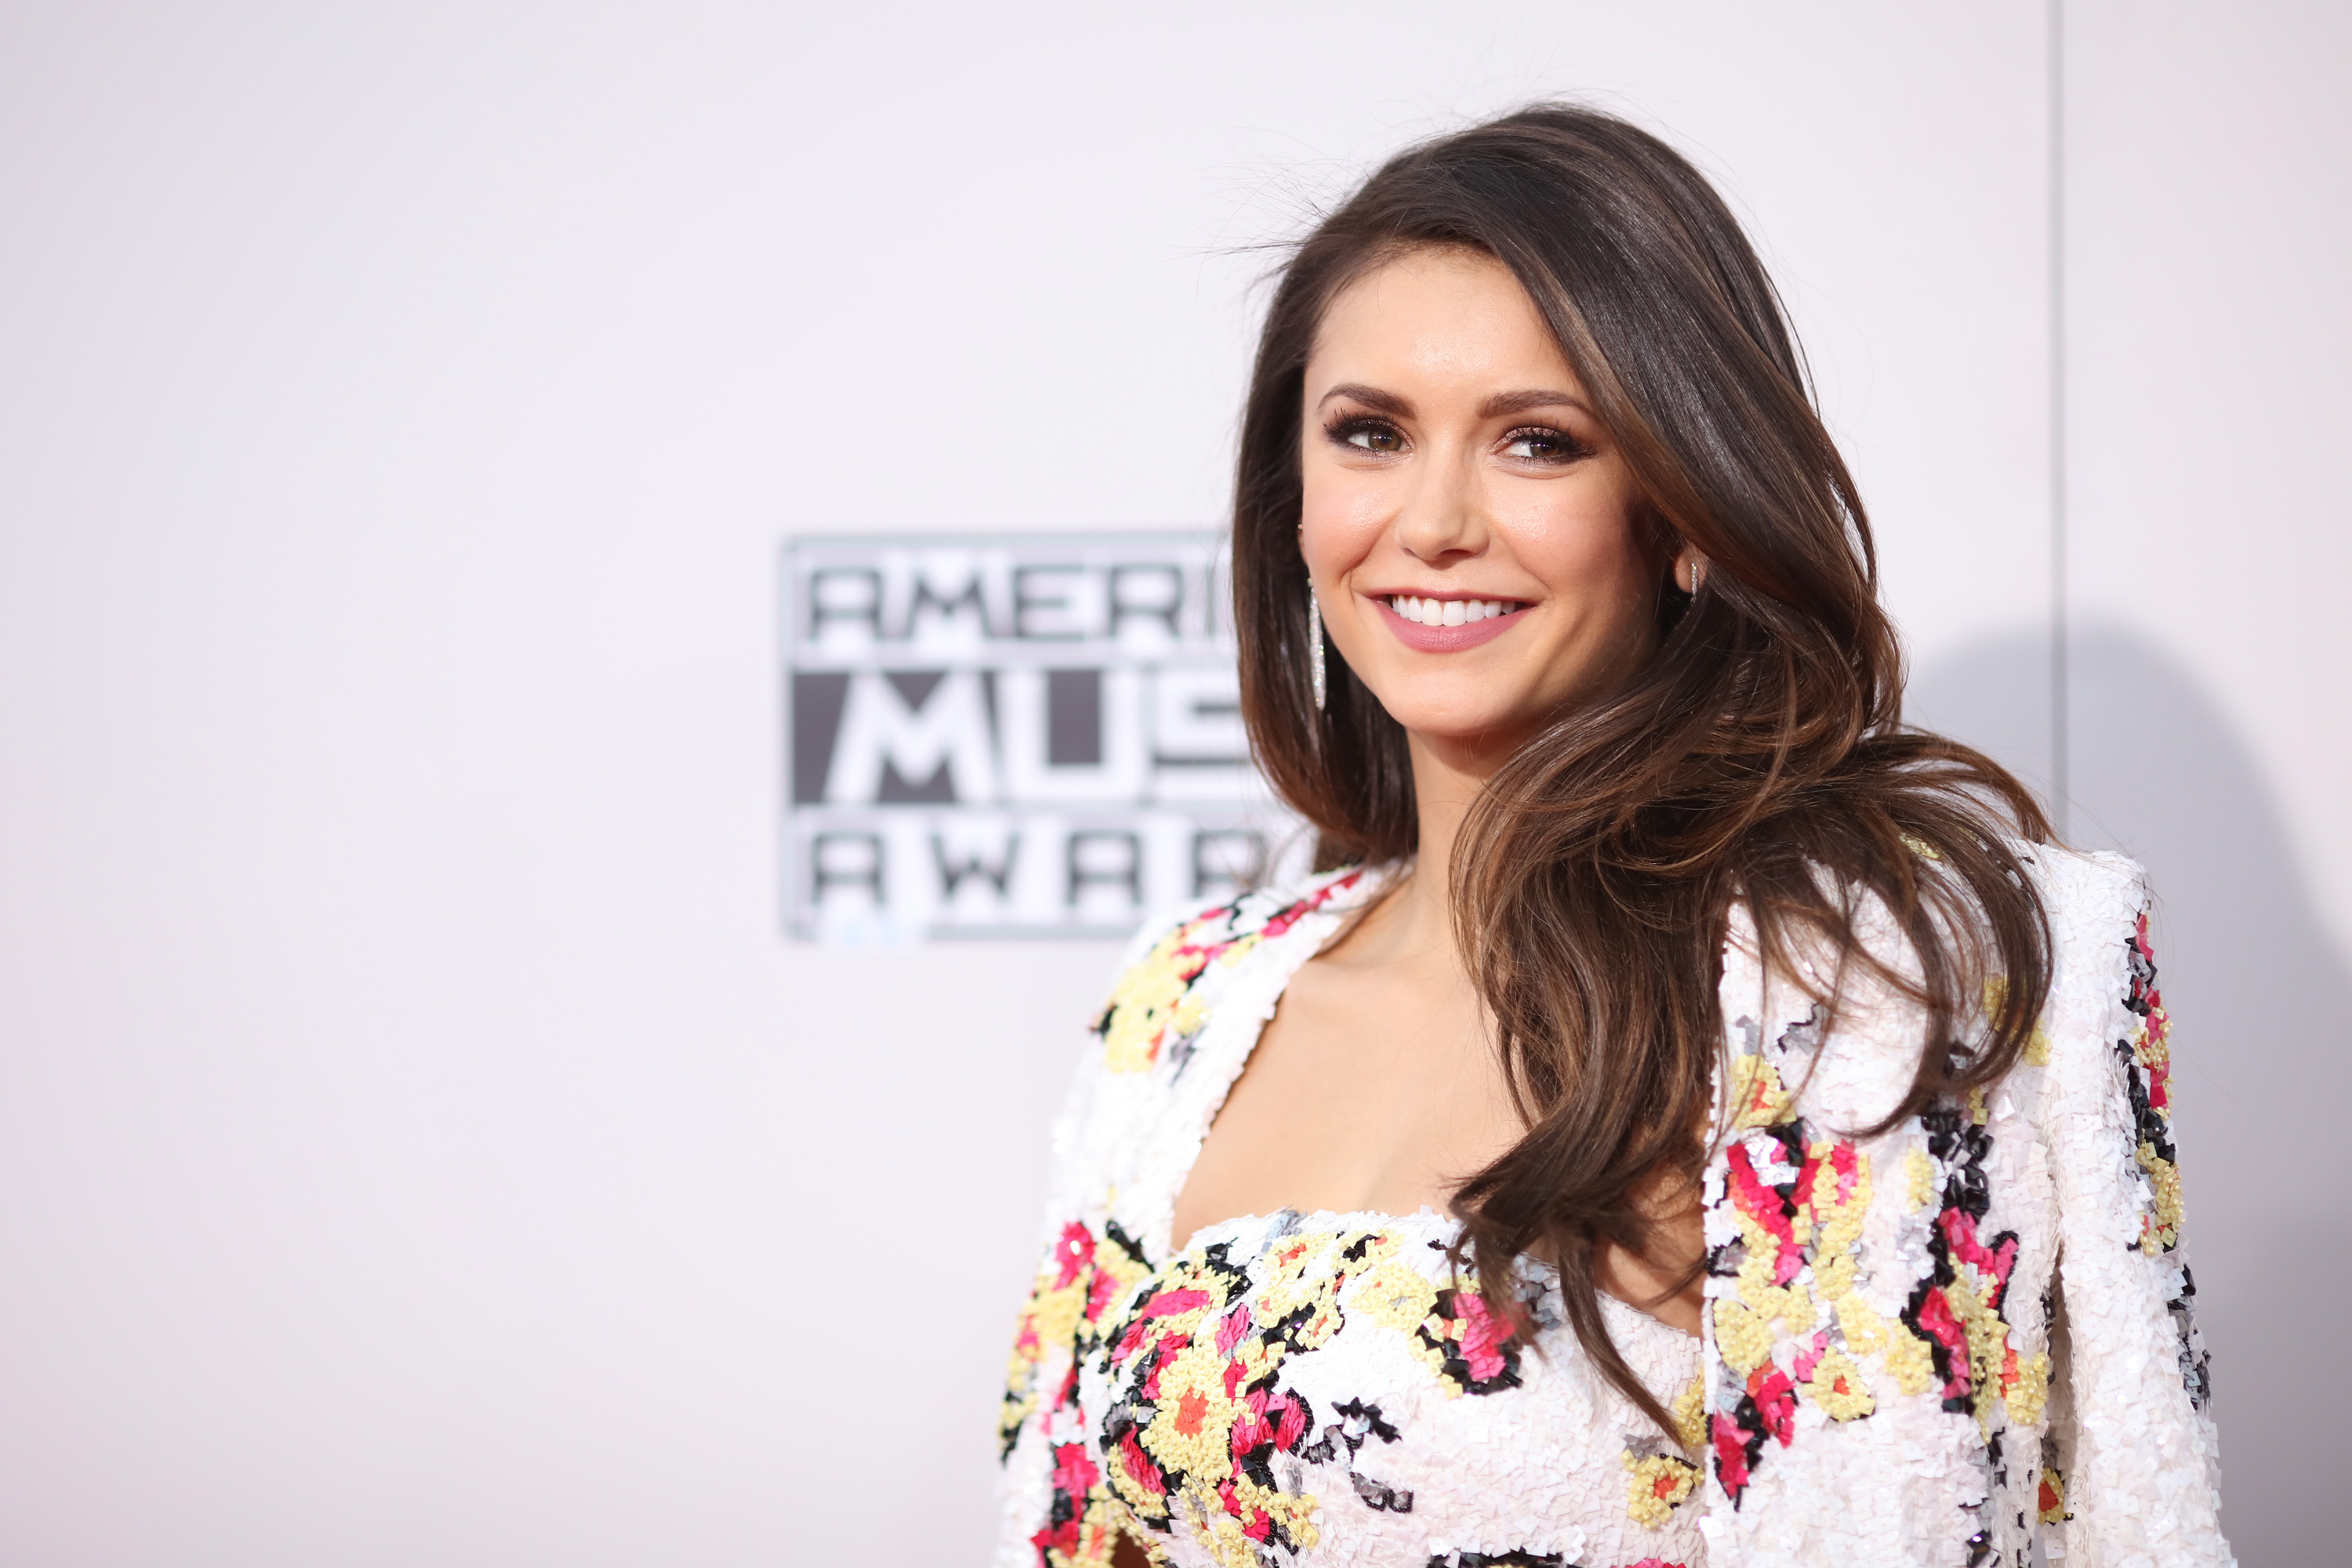 Actress Nina Dobrev attends the 2015 American Music Awards at Microsoft Theater on November 22, 2015 in Los Angeles, California.